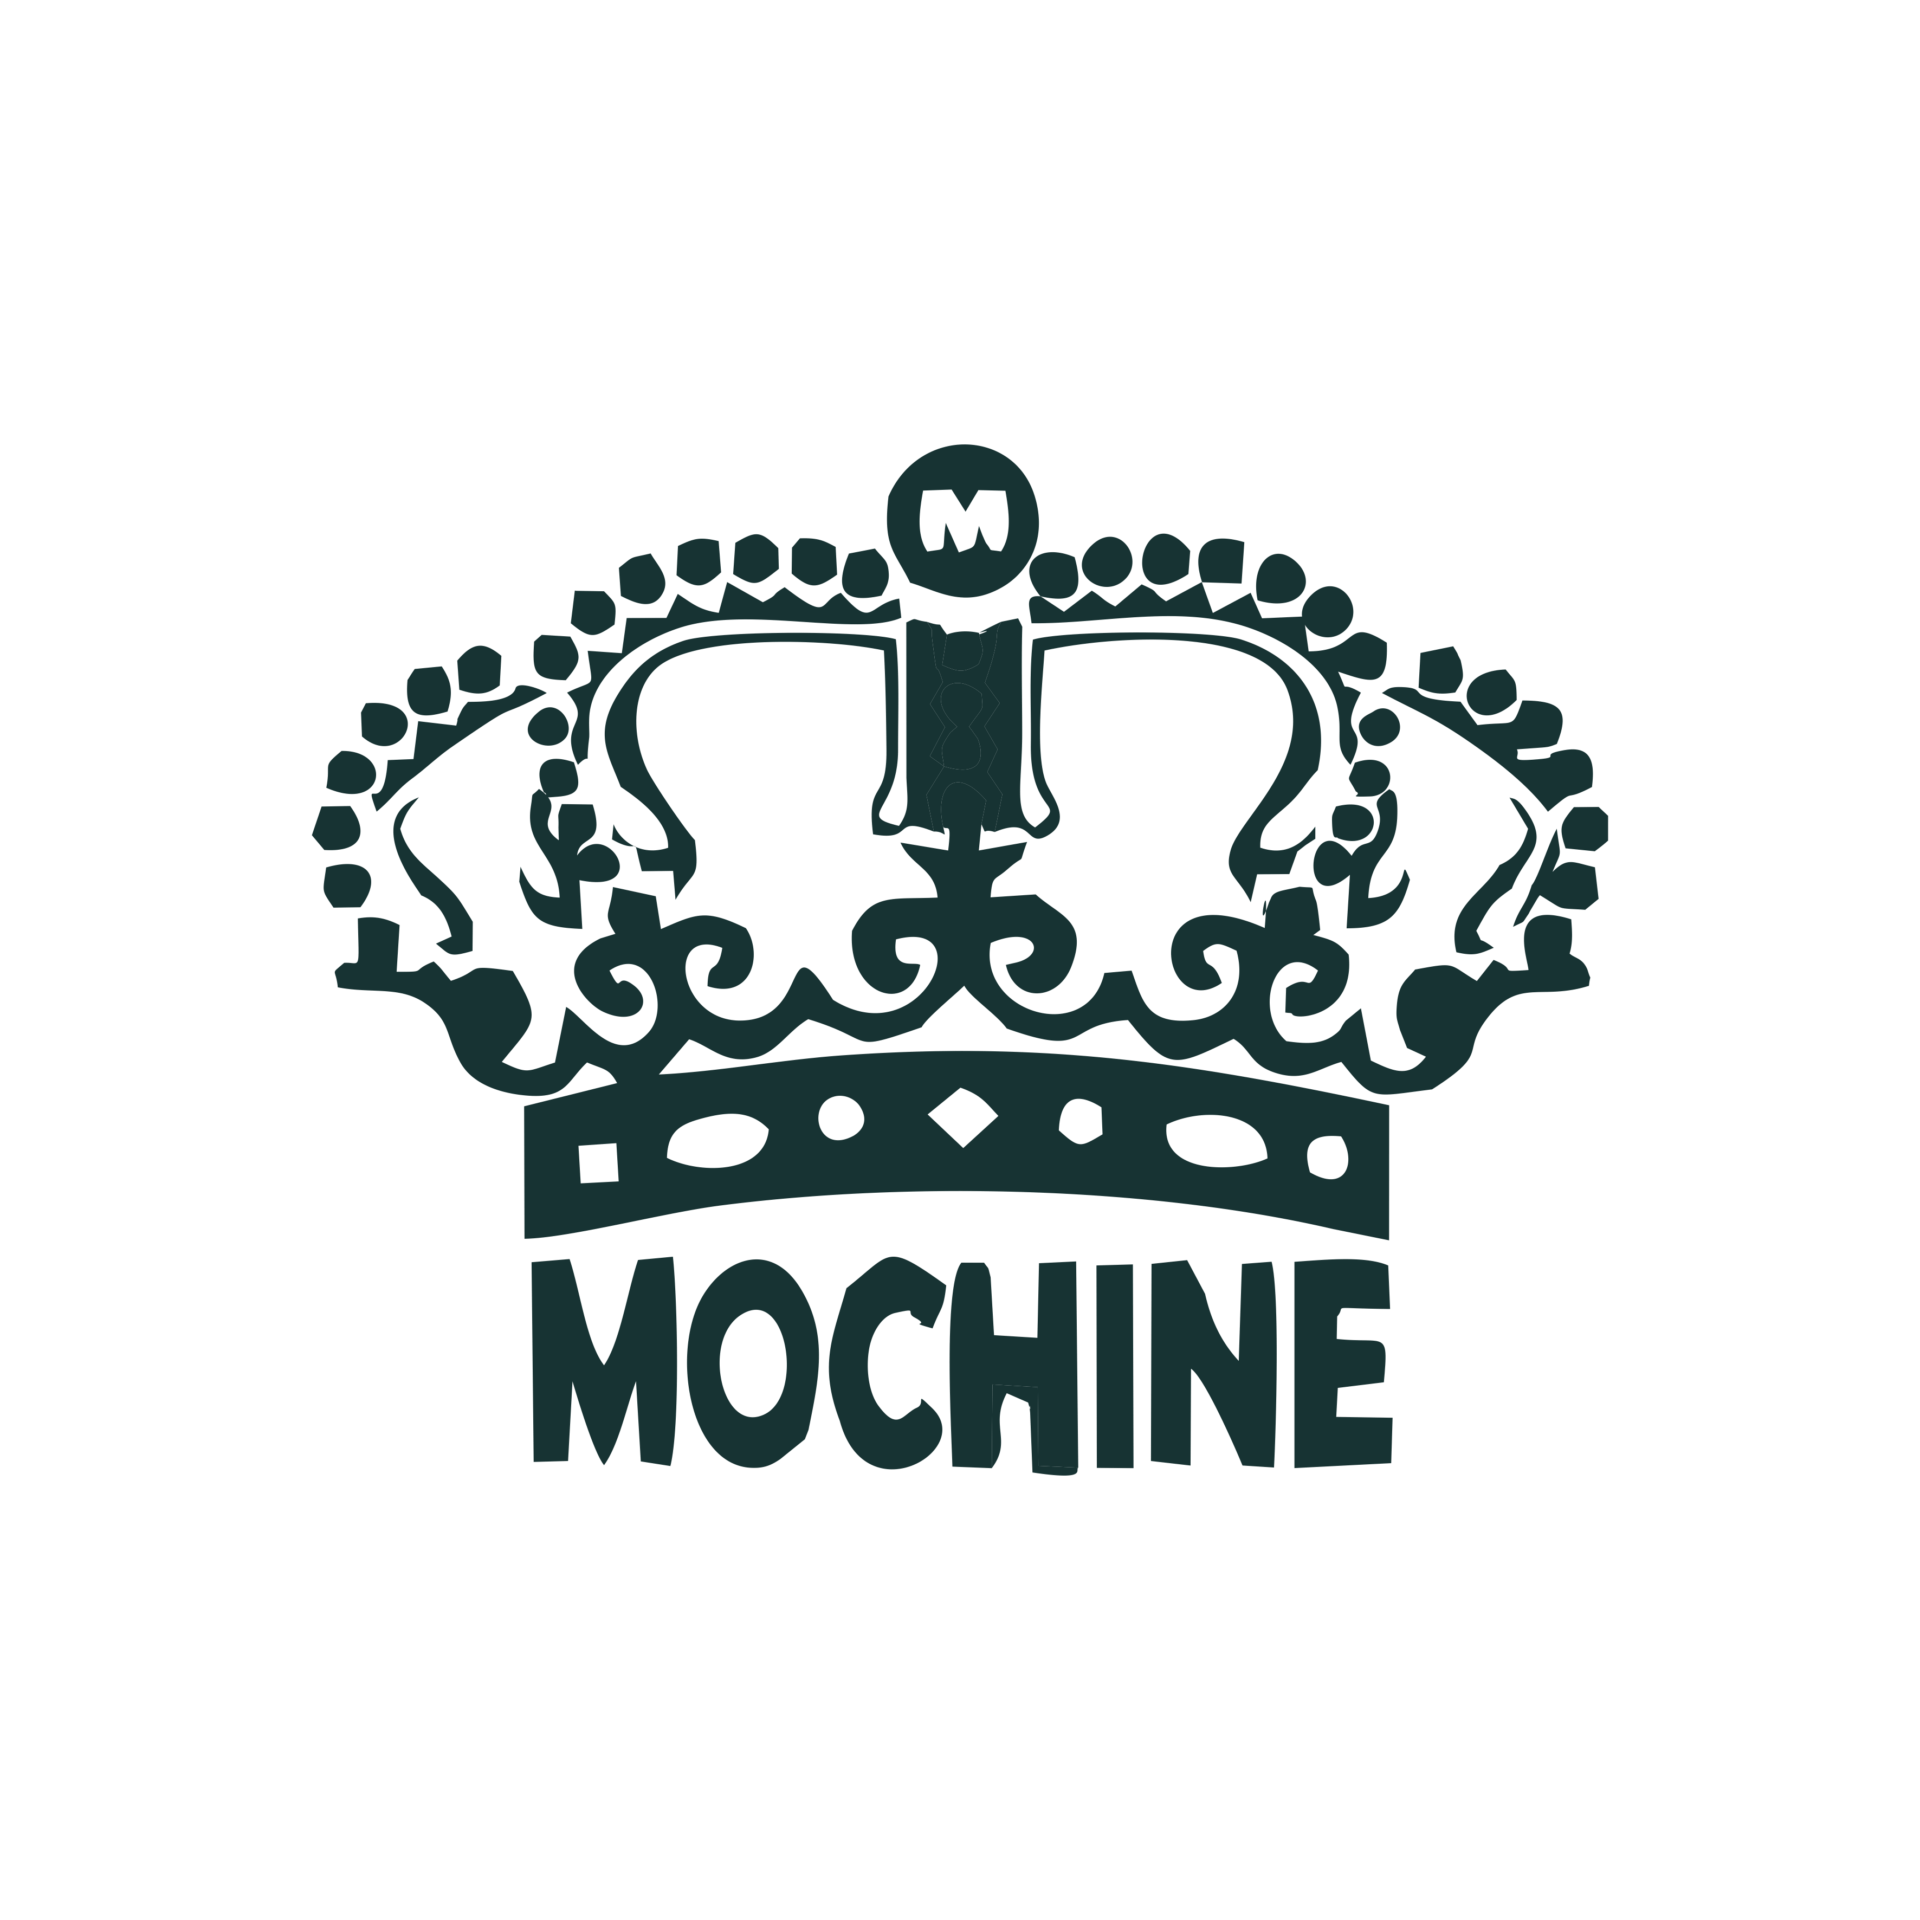 MOCHINE : Brand Short Description Type Here.